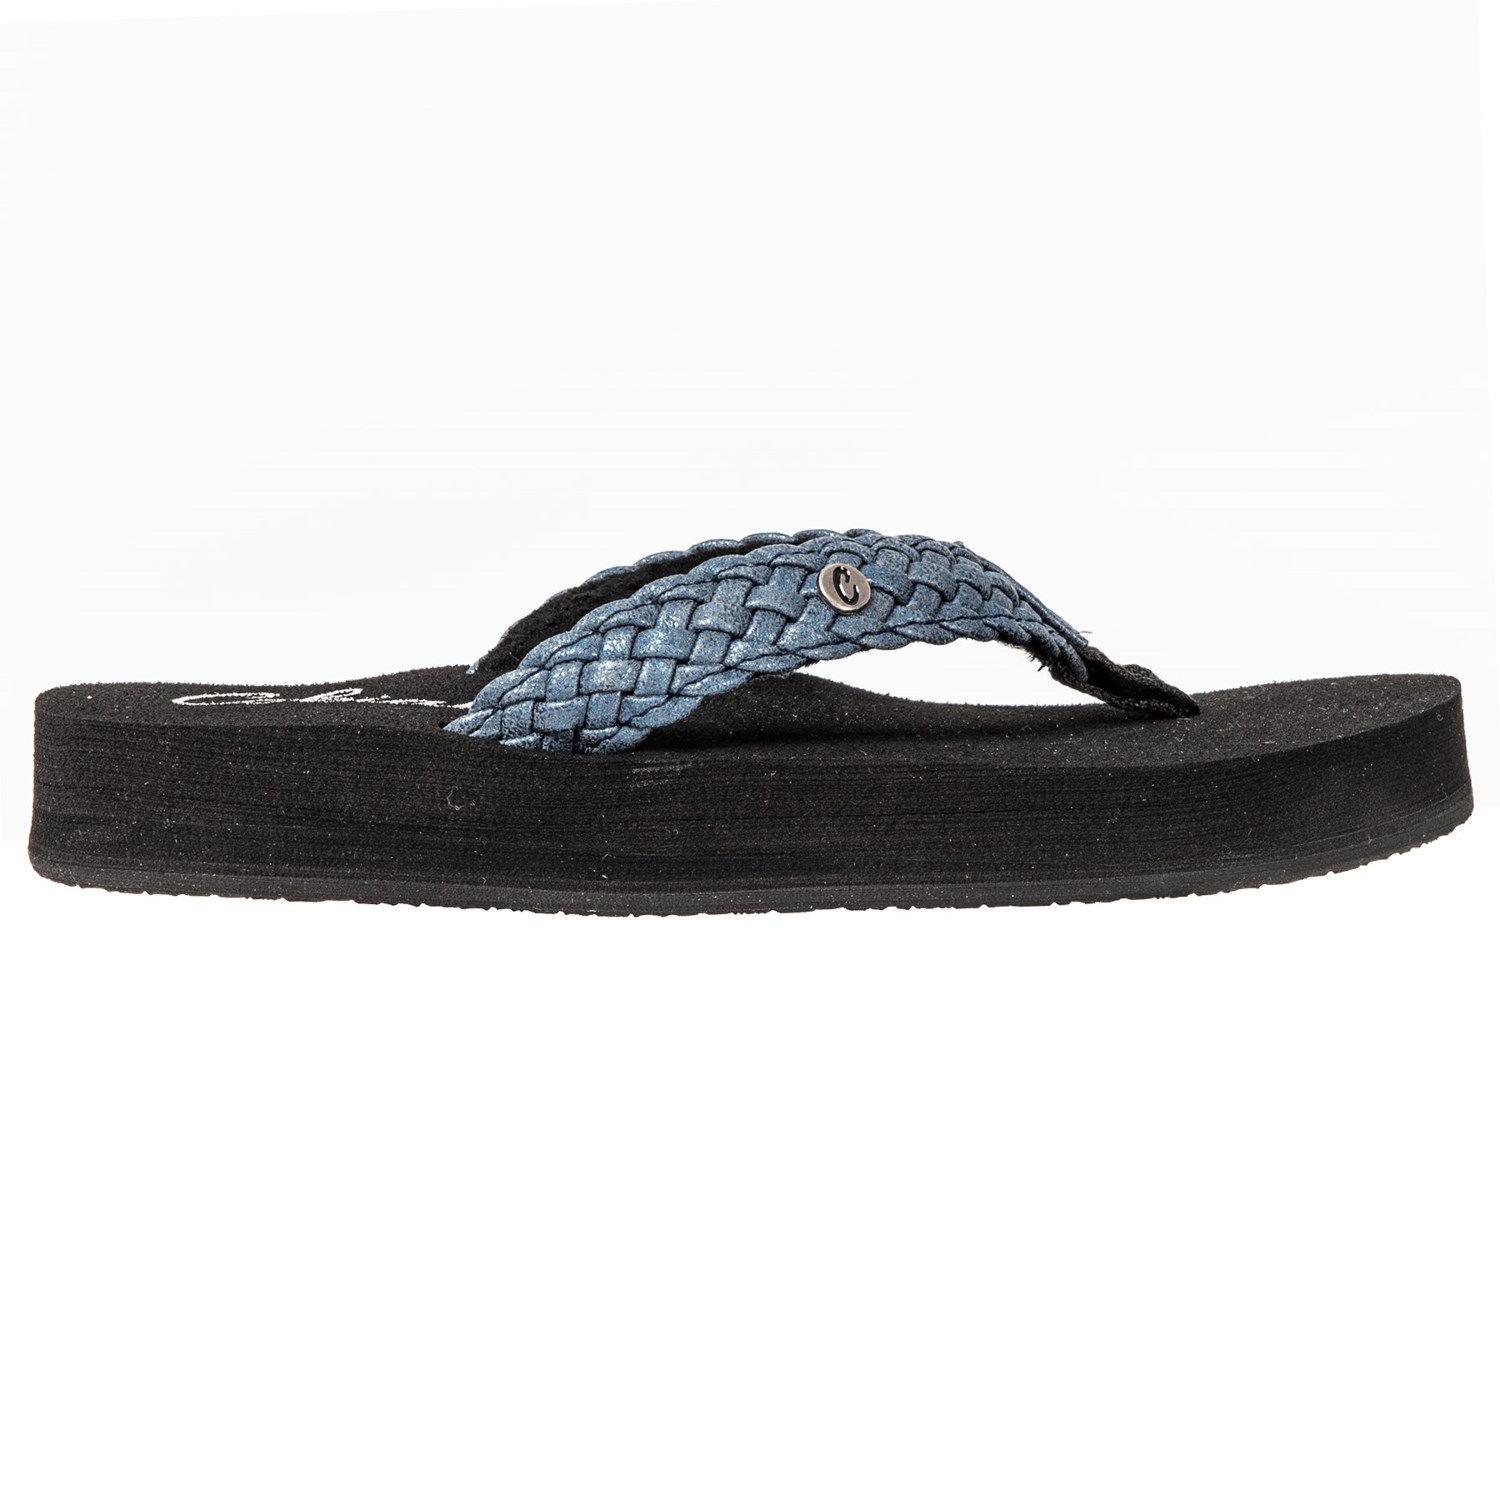 661d4541c Cobian Braided Bounce Flip-Flops (For Women) - Save 46%